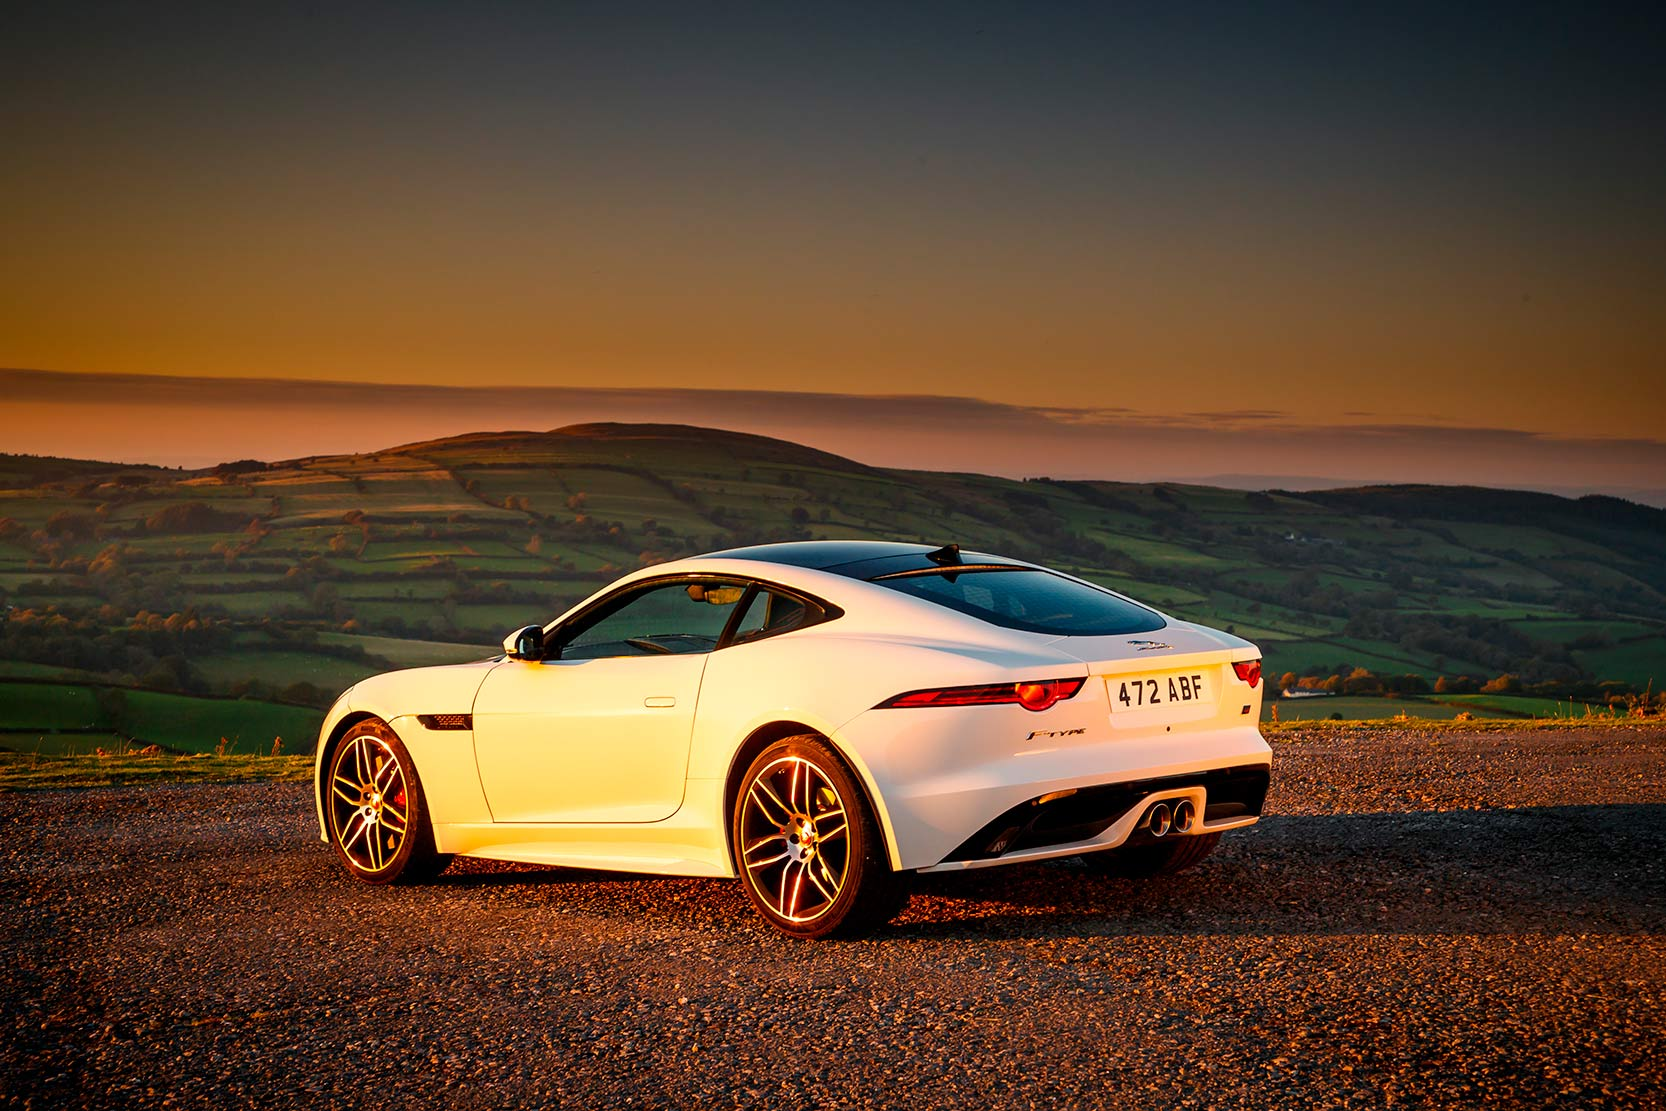 Exterieur_Jaguar-F-Type-Chequered-Flag_6